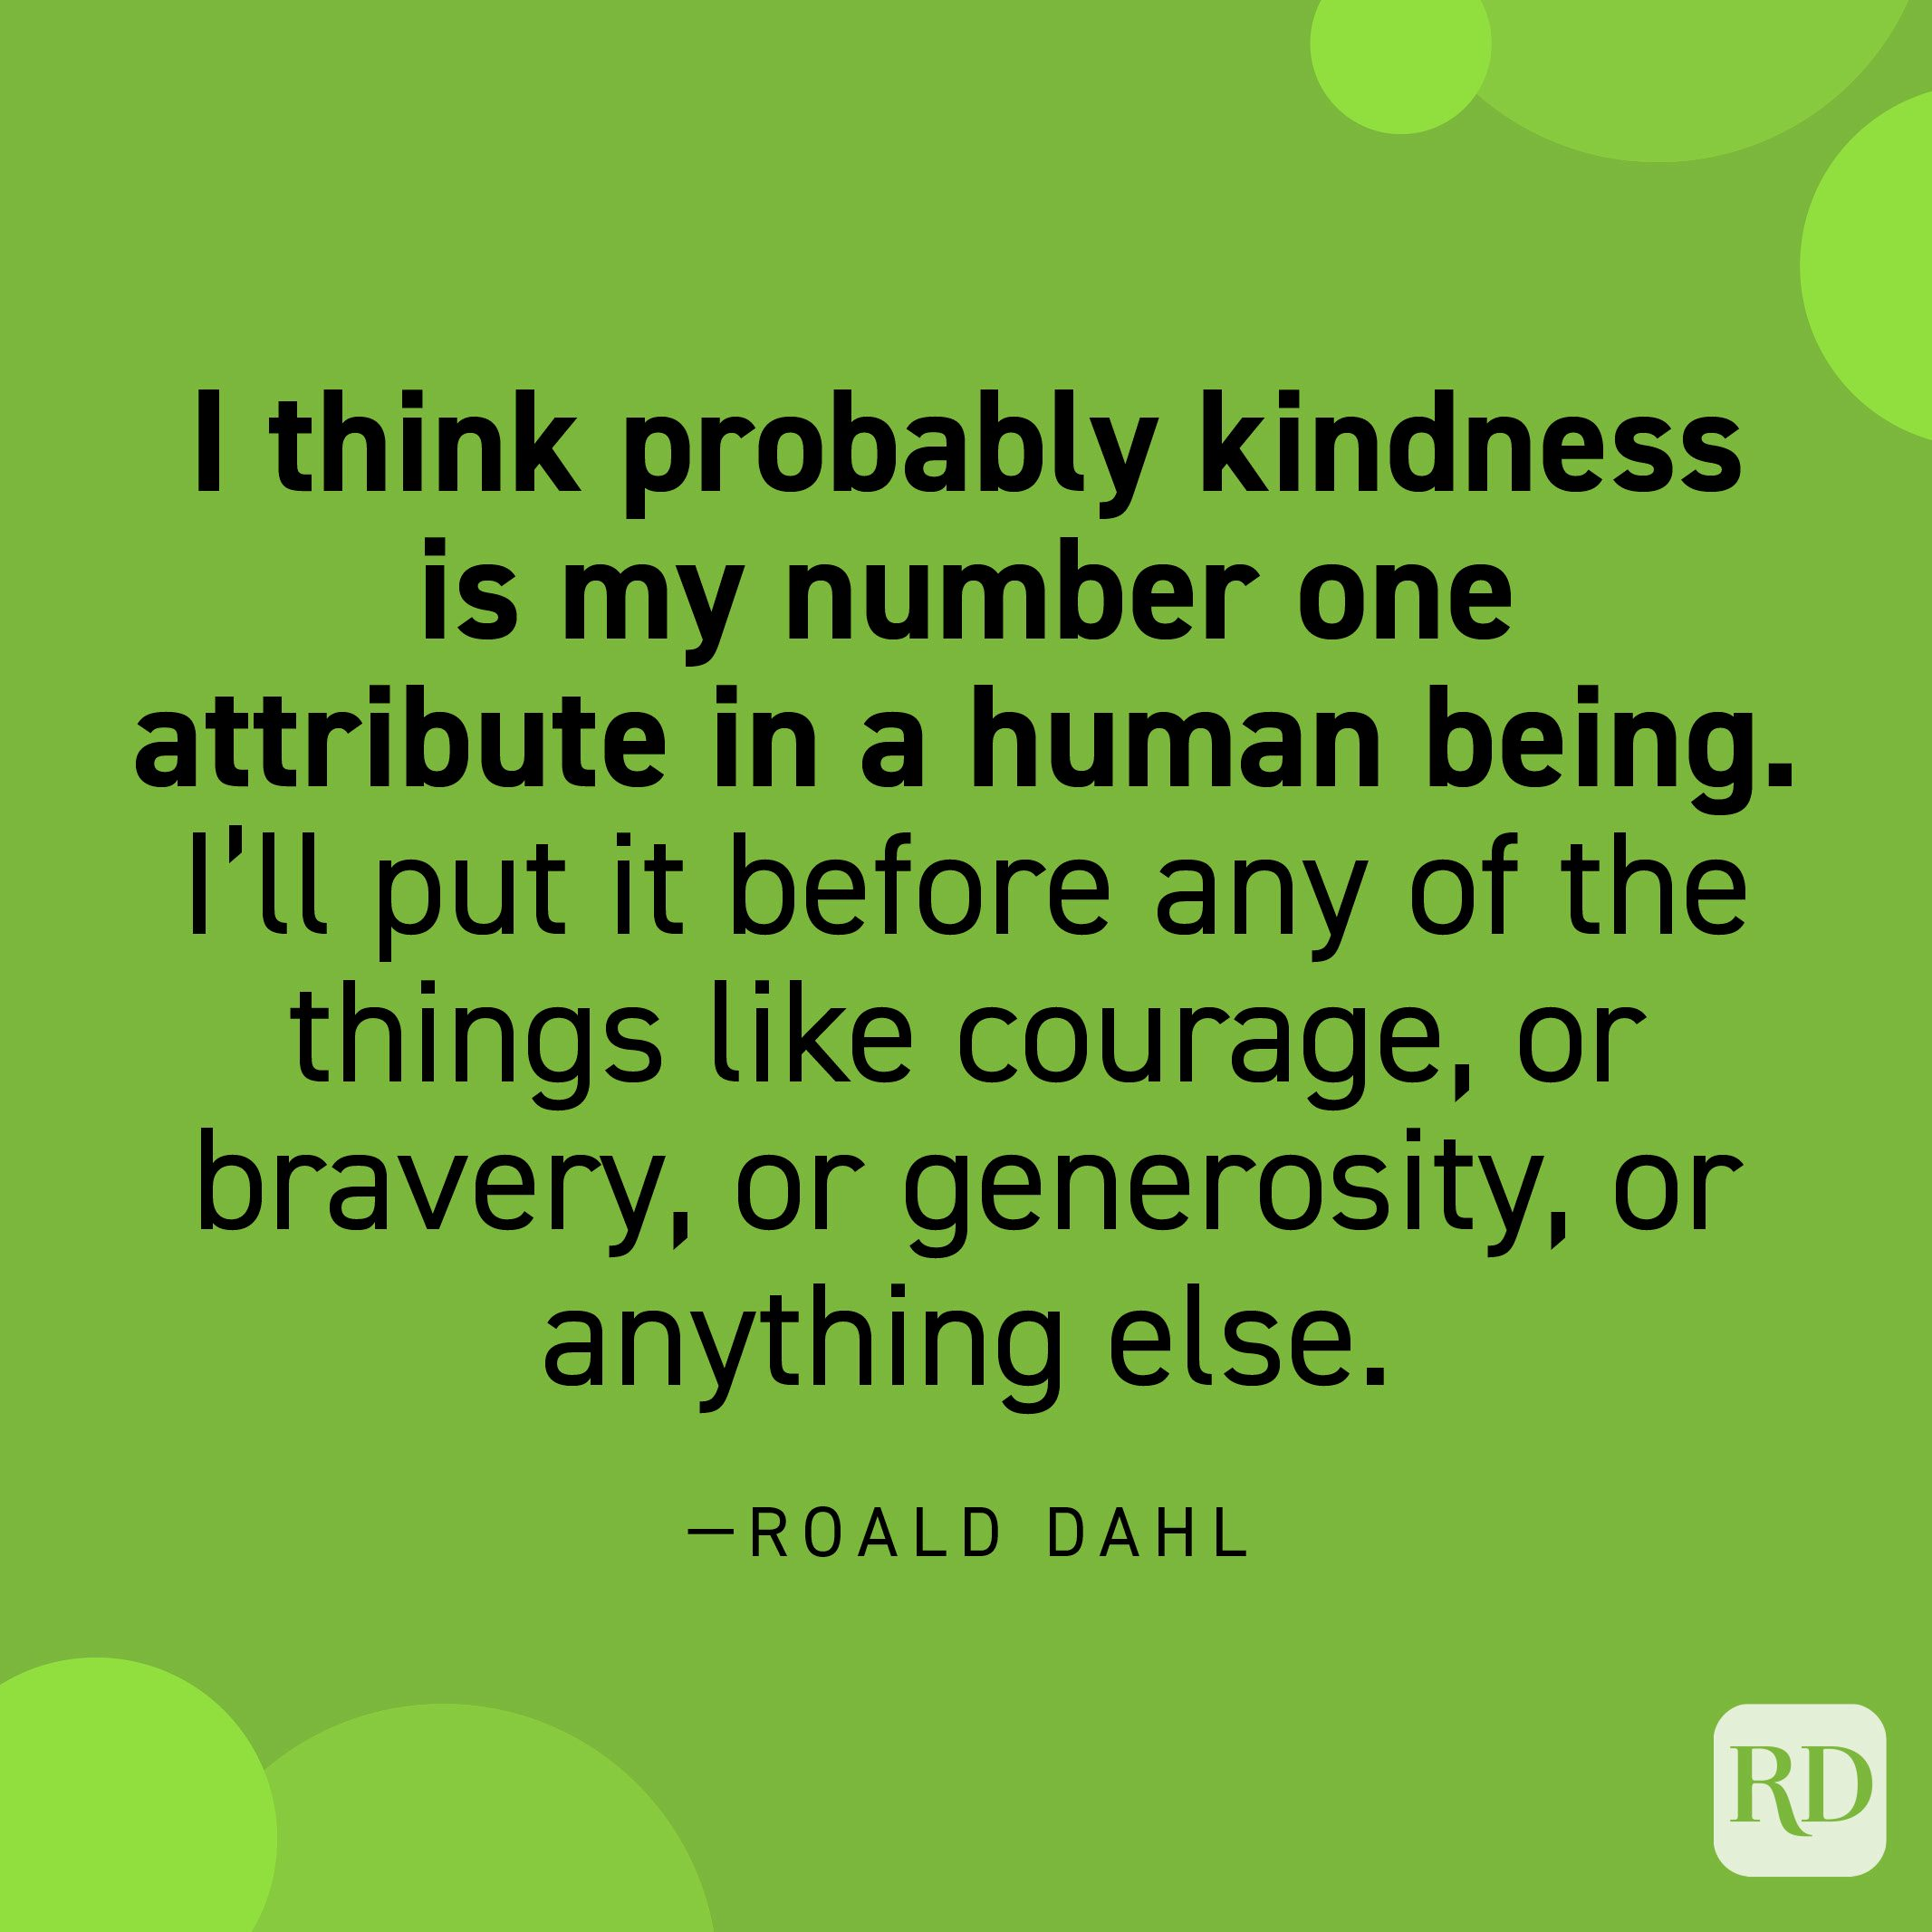 """""""I think probably kindness is my number one attribute in a human being. I'll put it before any of the things like courage, or bravery, or generosity, or anything else… Kindness—that simple word. To be kind—it covers everything, to my mind. If you're kind that's it."""" —Roahl Dahl"""